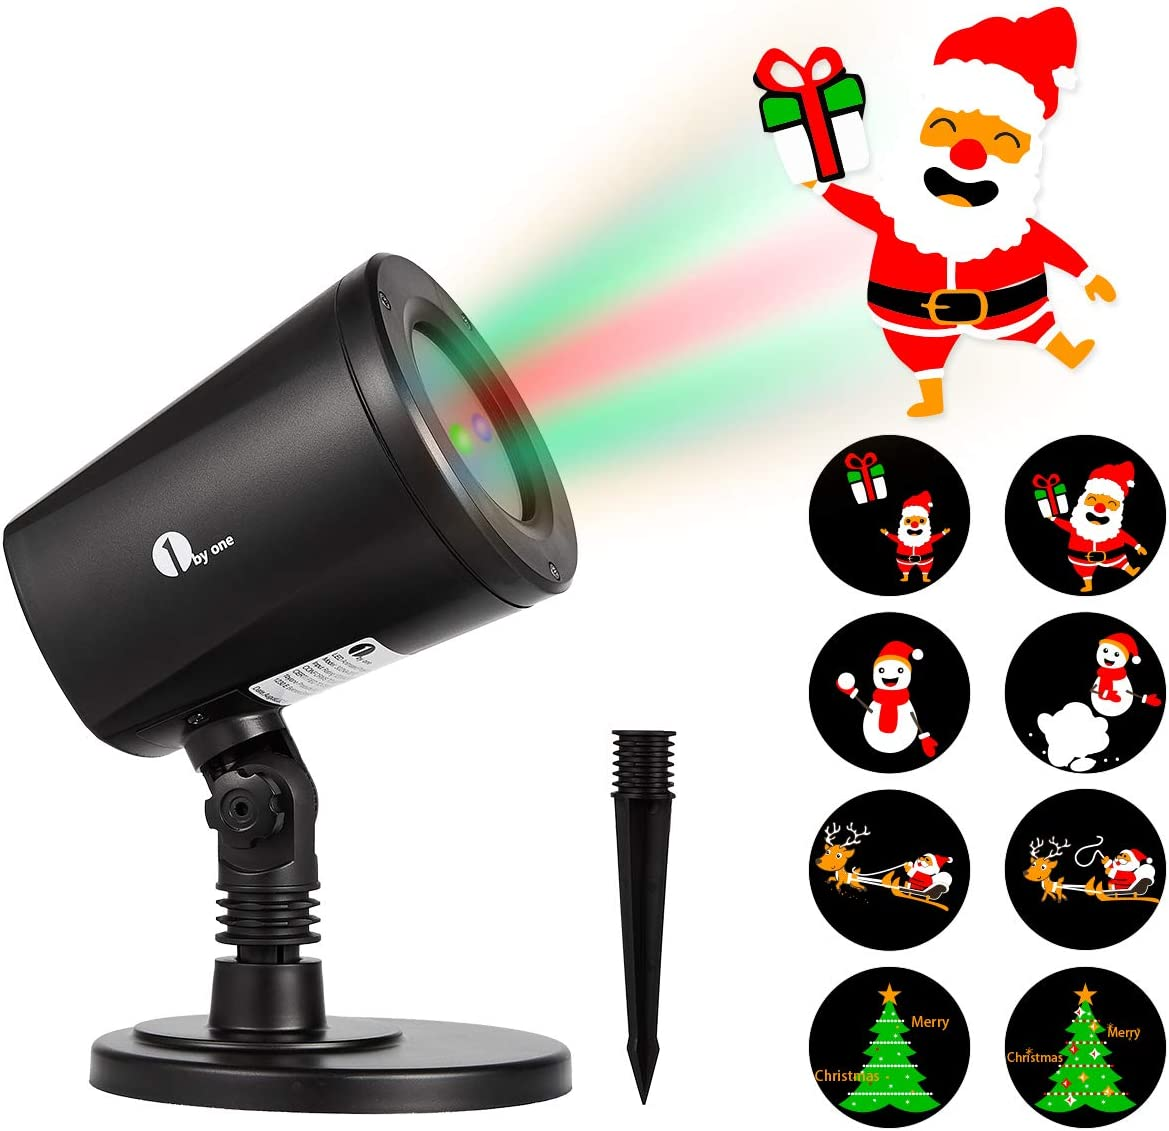 1byone Christmas Lights Projector Decorations Auto-Shifting Images Switchable Pattern Outdoor Indoor Use, Ip65 Water-Resistant